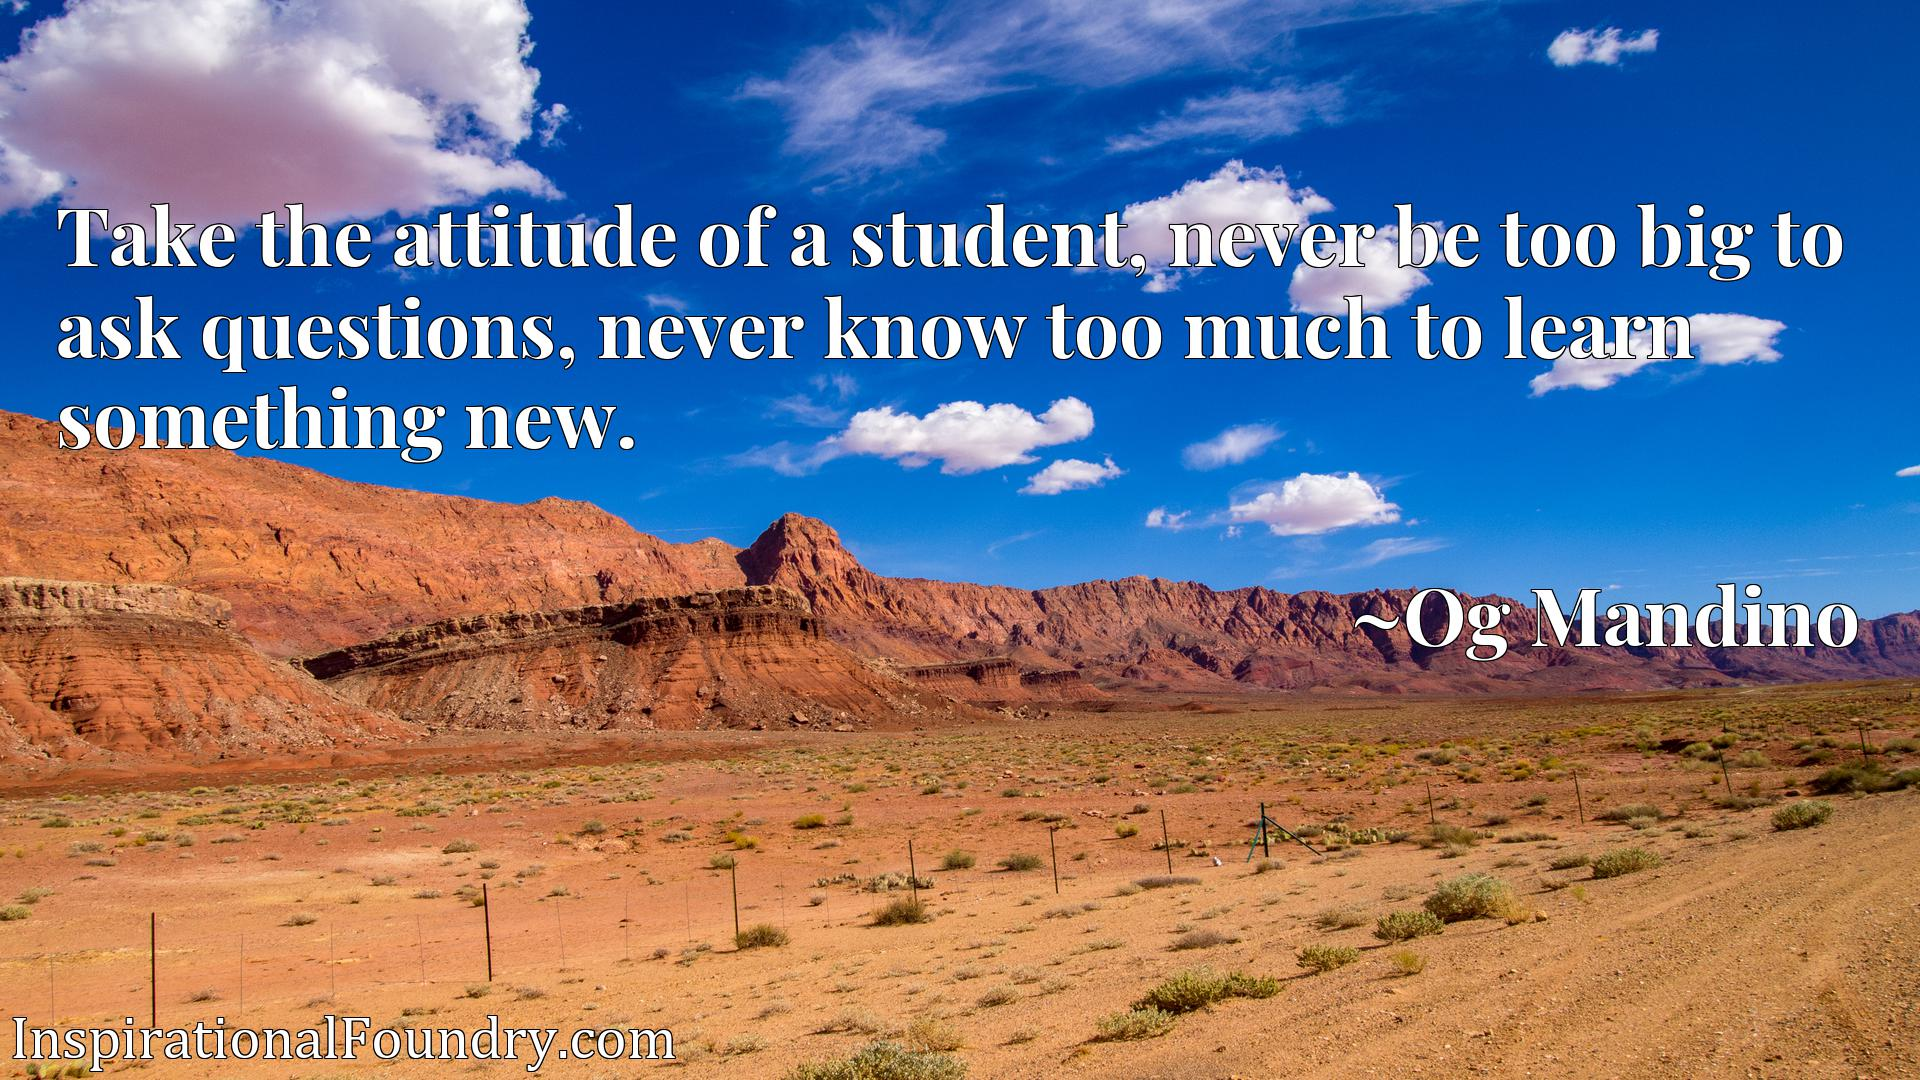 Quote Picture :Take the attitude of a student, never be too big to ask questions, never know too much to learn something new.